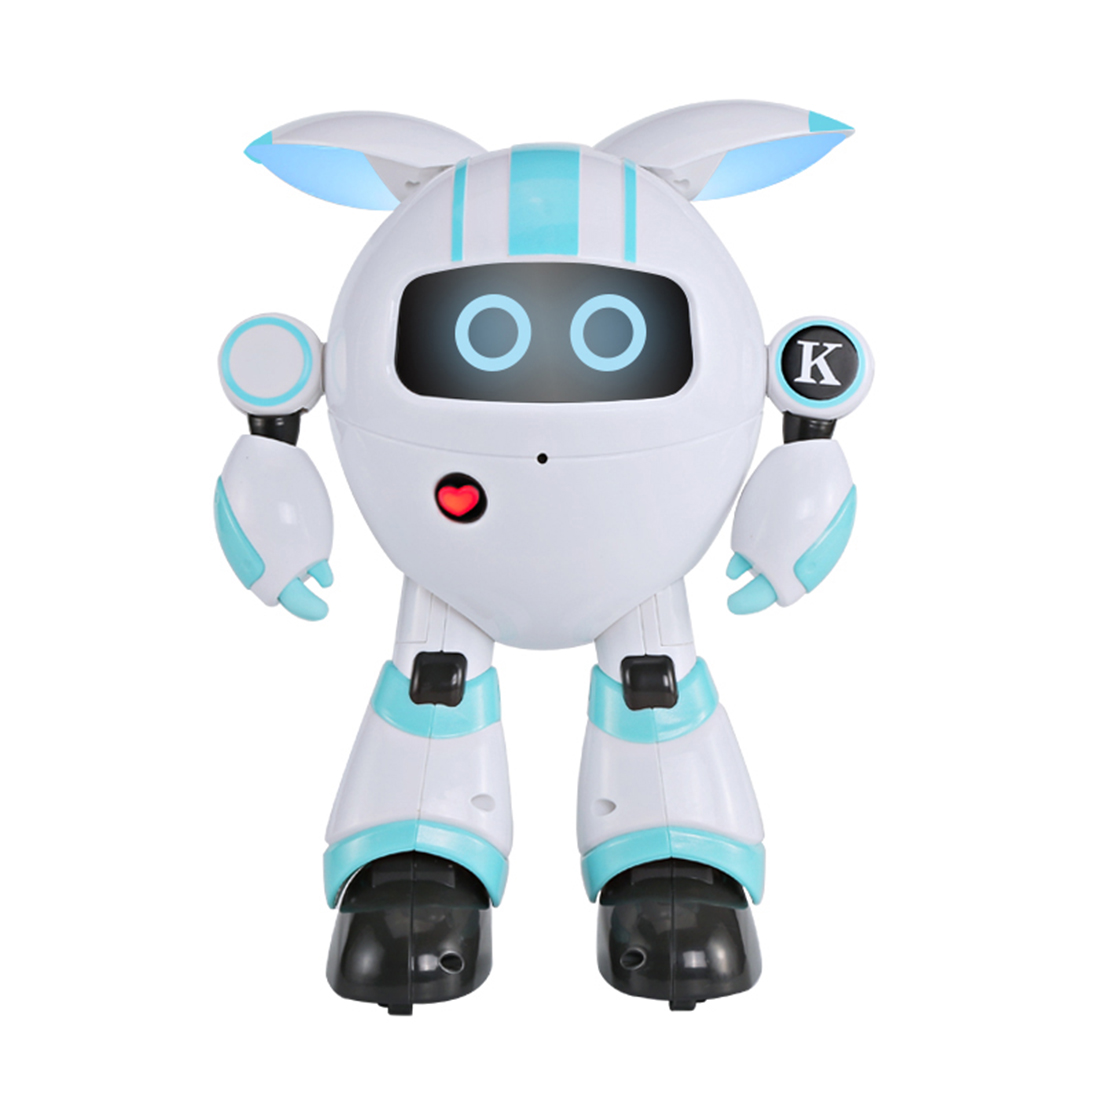 Modiker High Tech Smart Programming Rc Robot Engineering Forklift Rc Indoor Toy Light And Music For Children Programmable Toy Toys & Hobbies